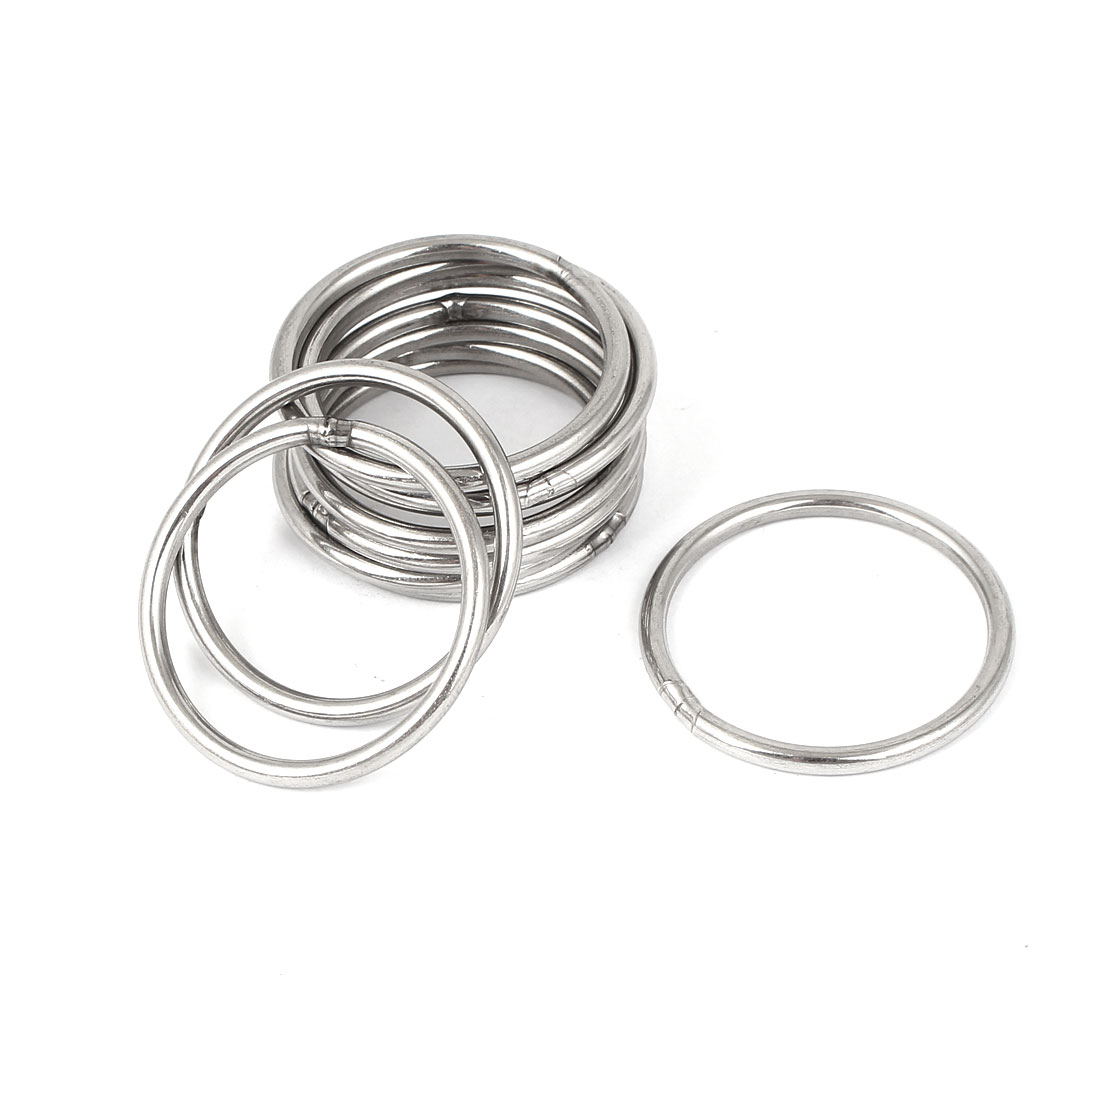 M3 x 40mm 201 Stainless Steel Webbing Strapping Welded O Rings 10 Pcs